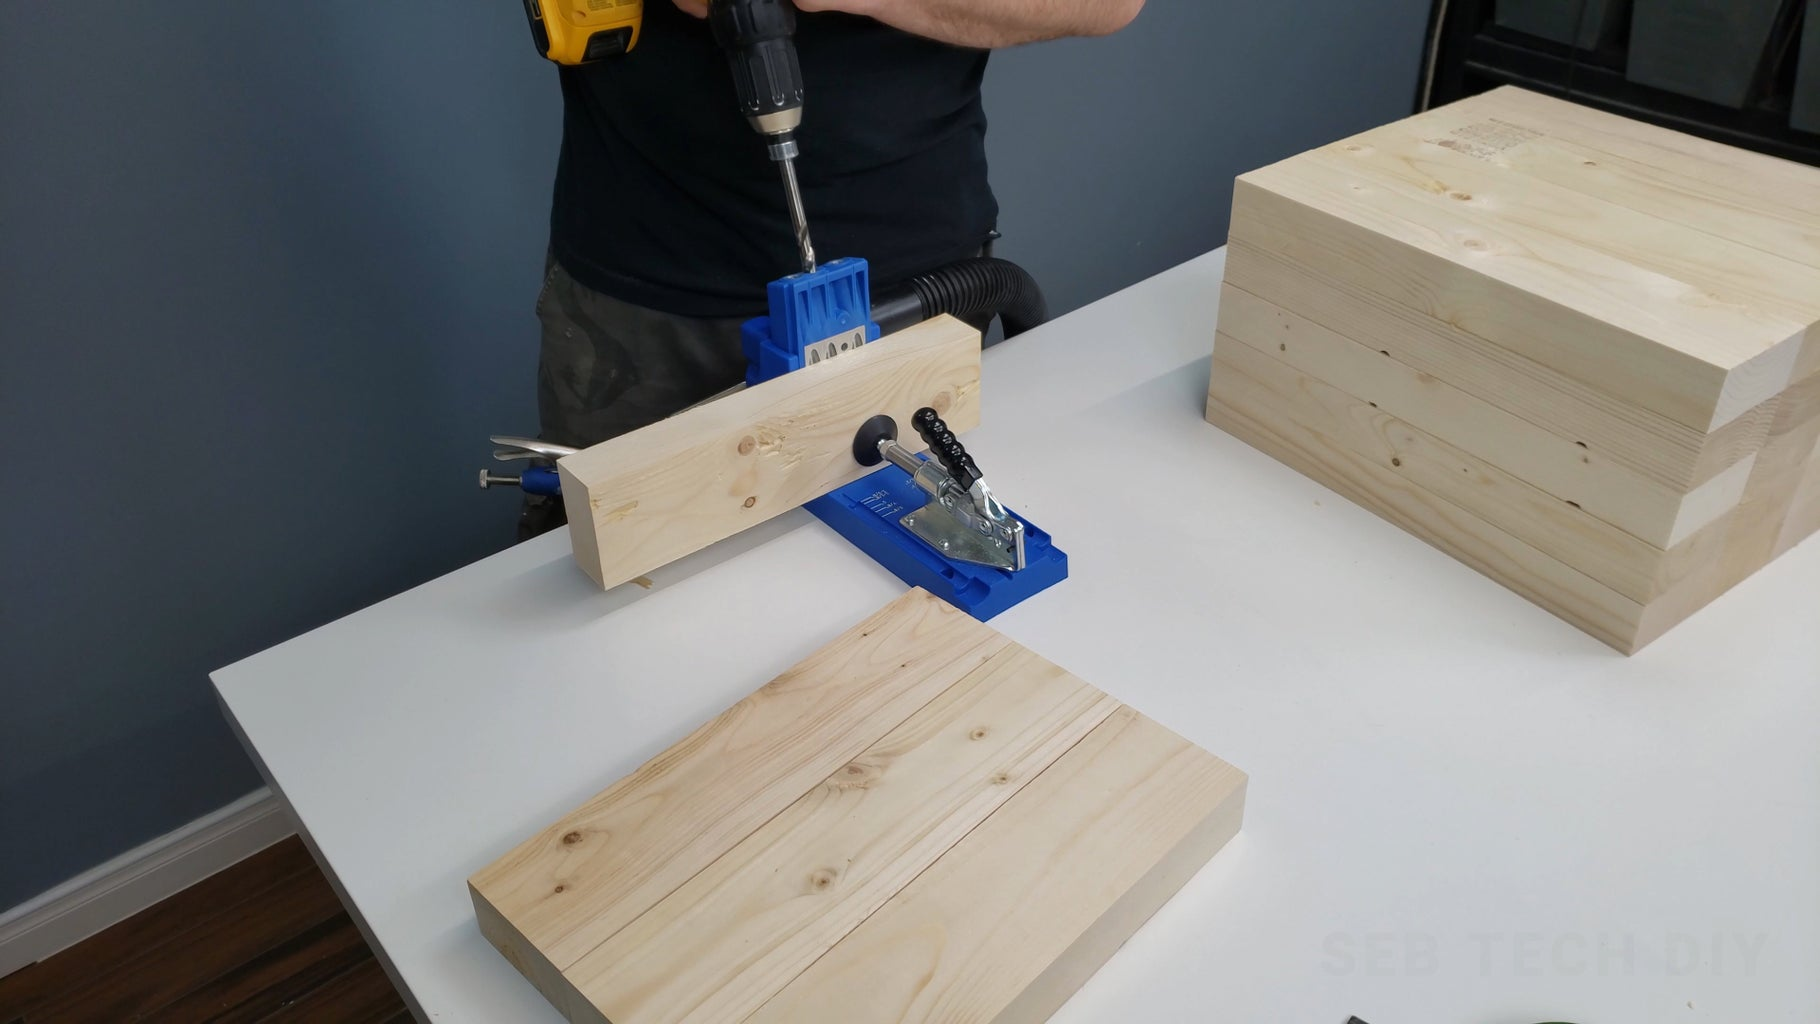 Drilling the Pocket Holes